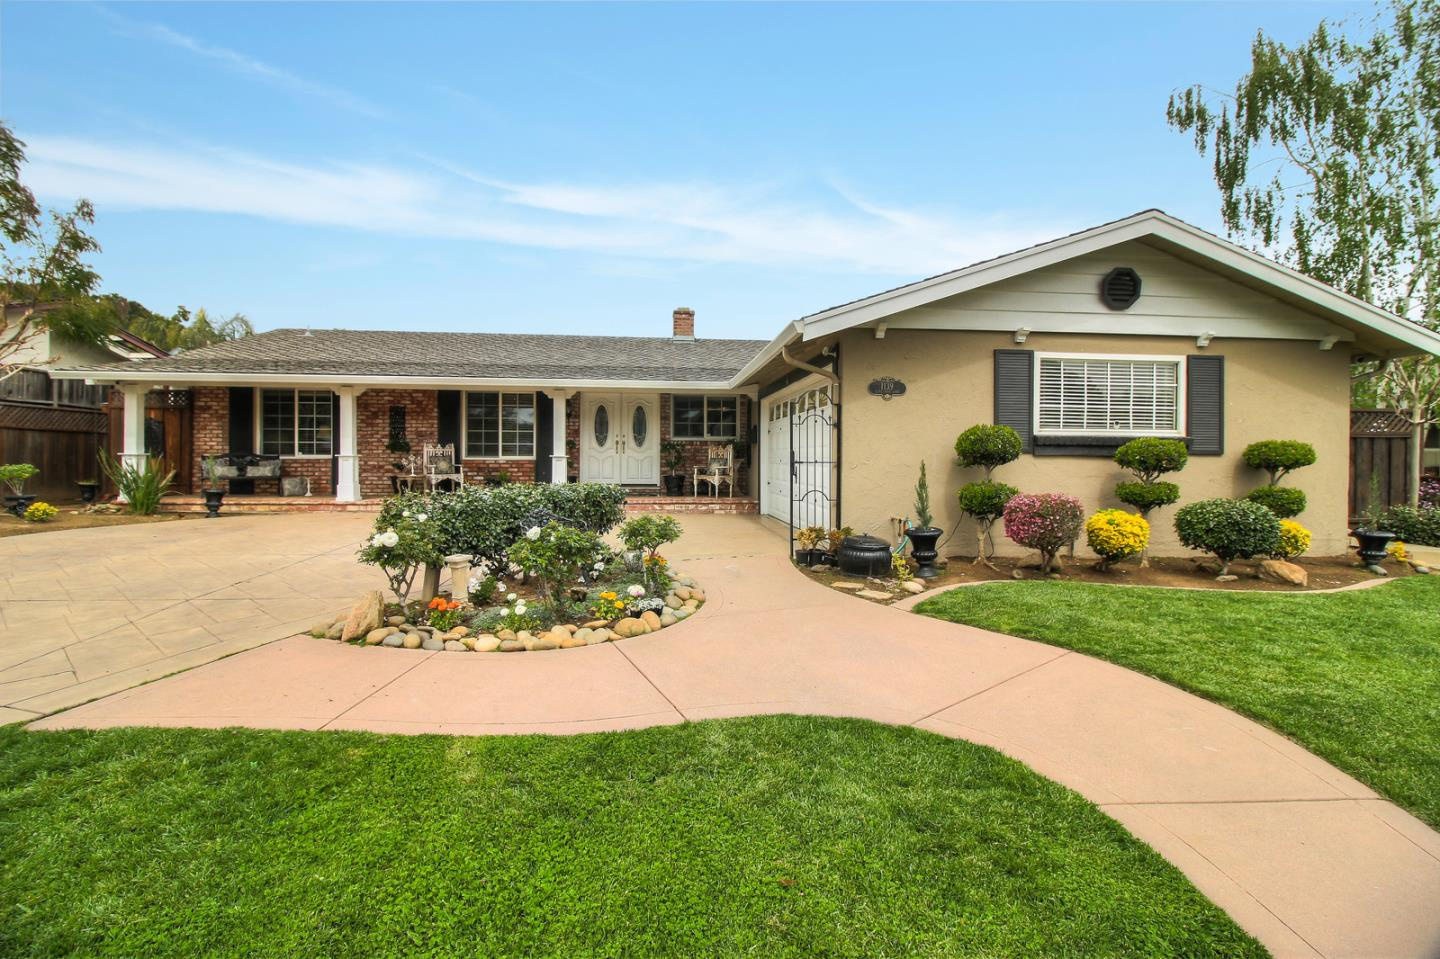 Property for sale at 1139 Lone Pine LN, San Jose,  California 95120